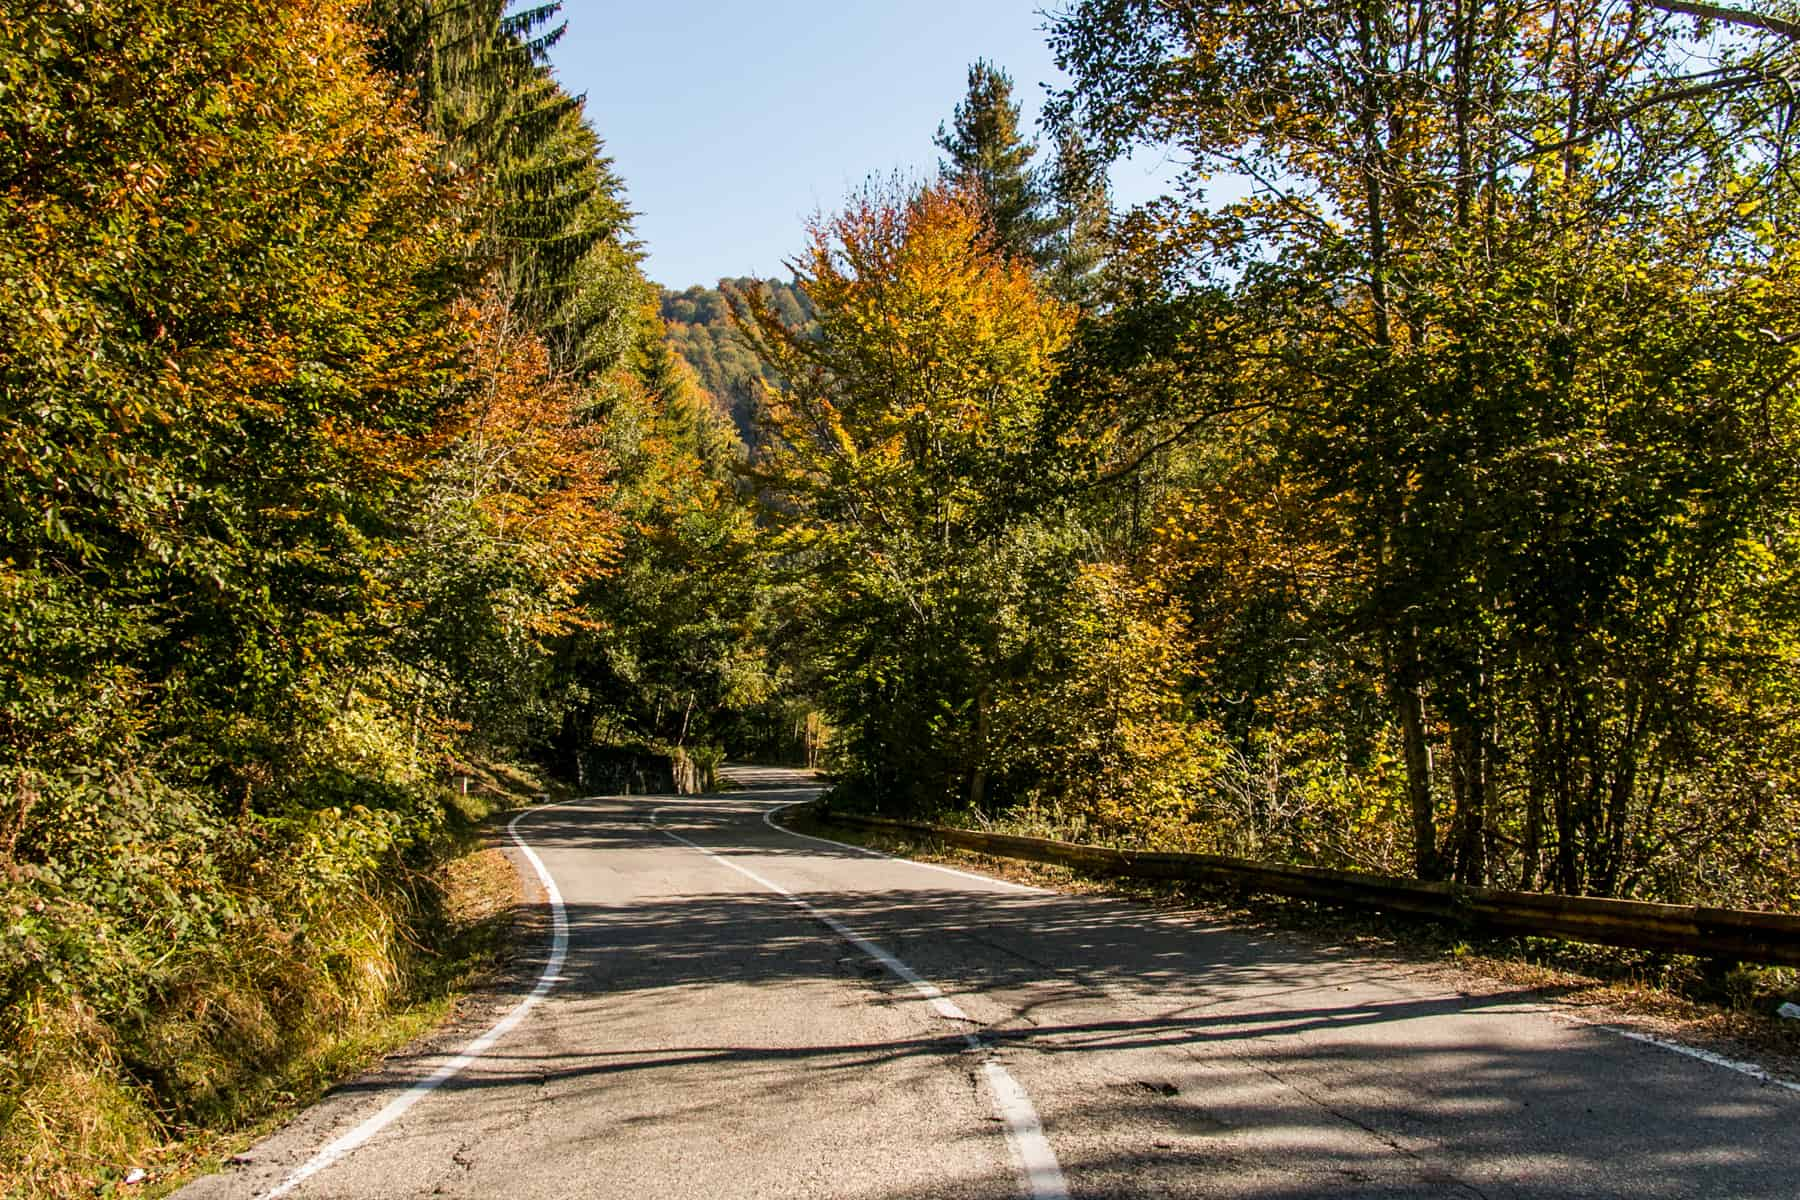 A road in autumn in Transylvania, Romania